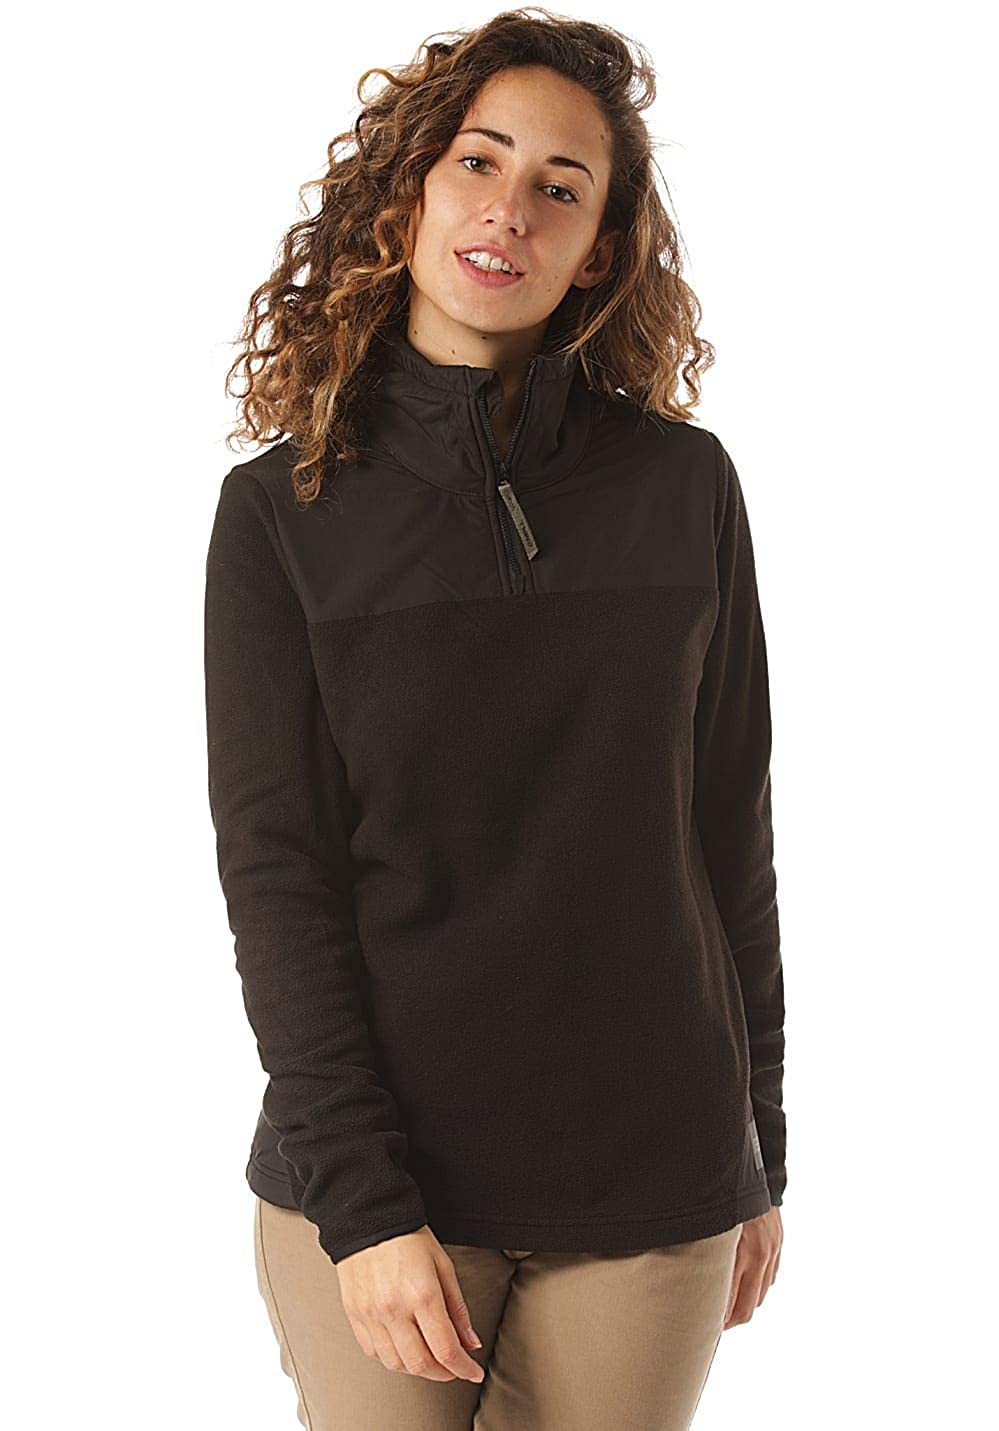 O'NEILL Damen Pw Original Hz Fleece